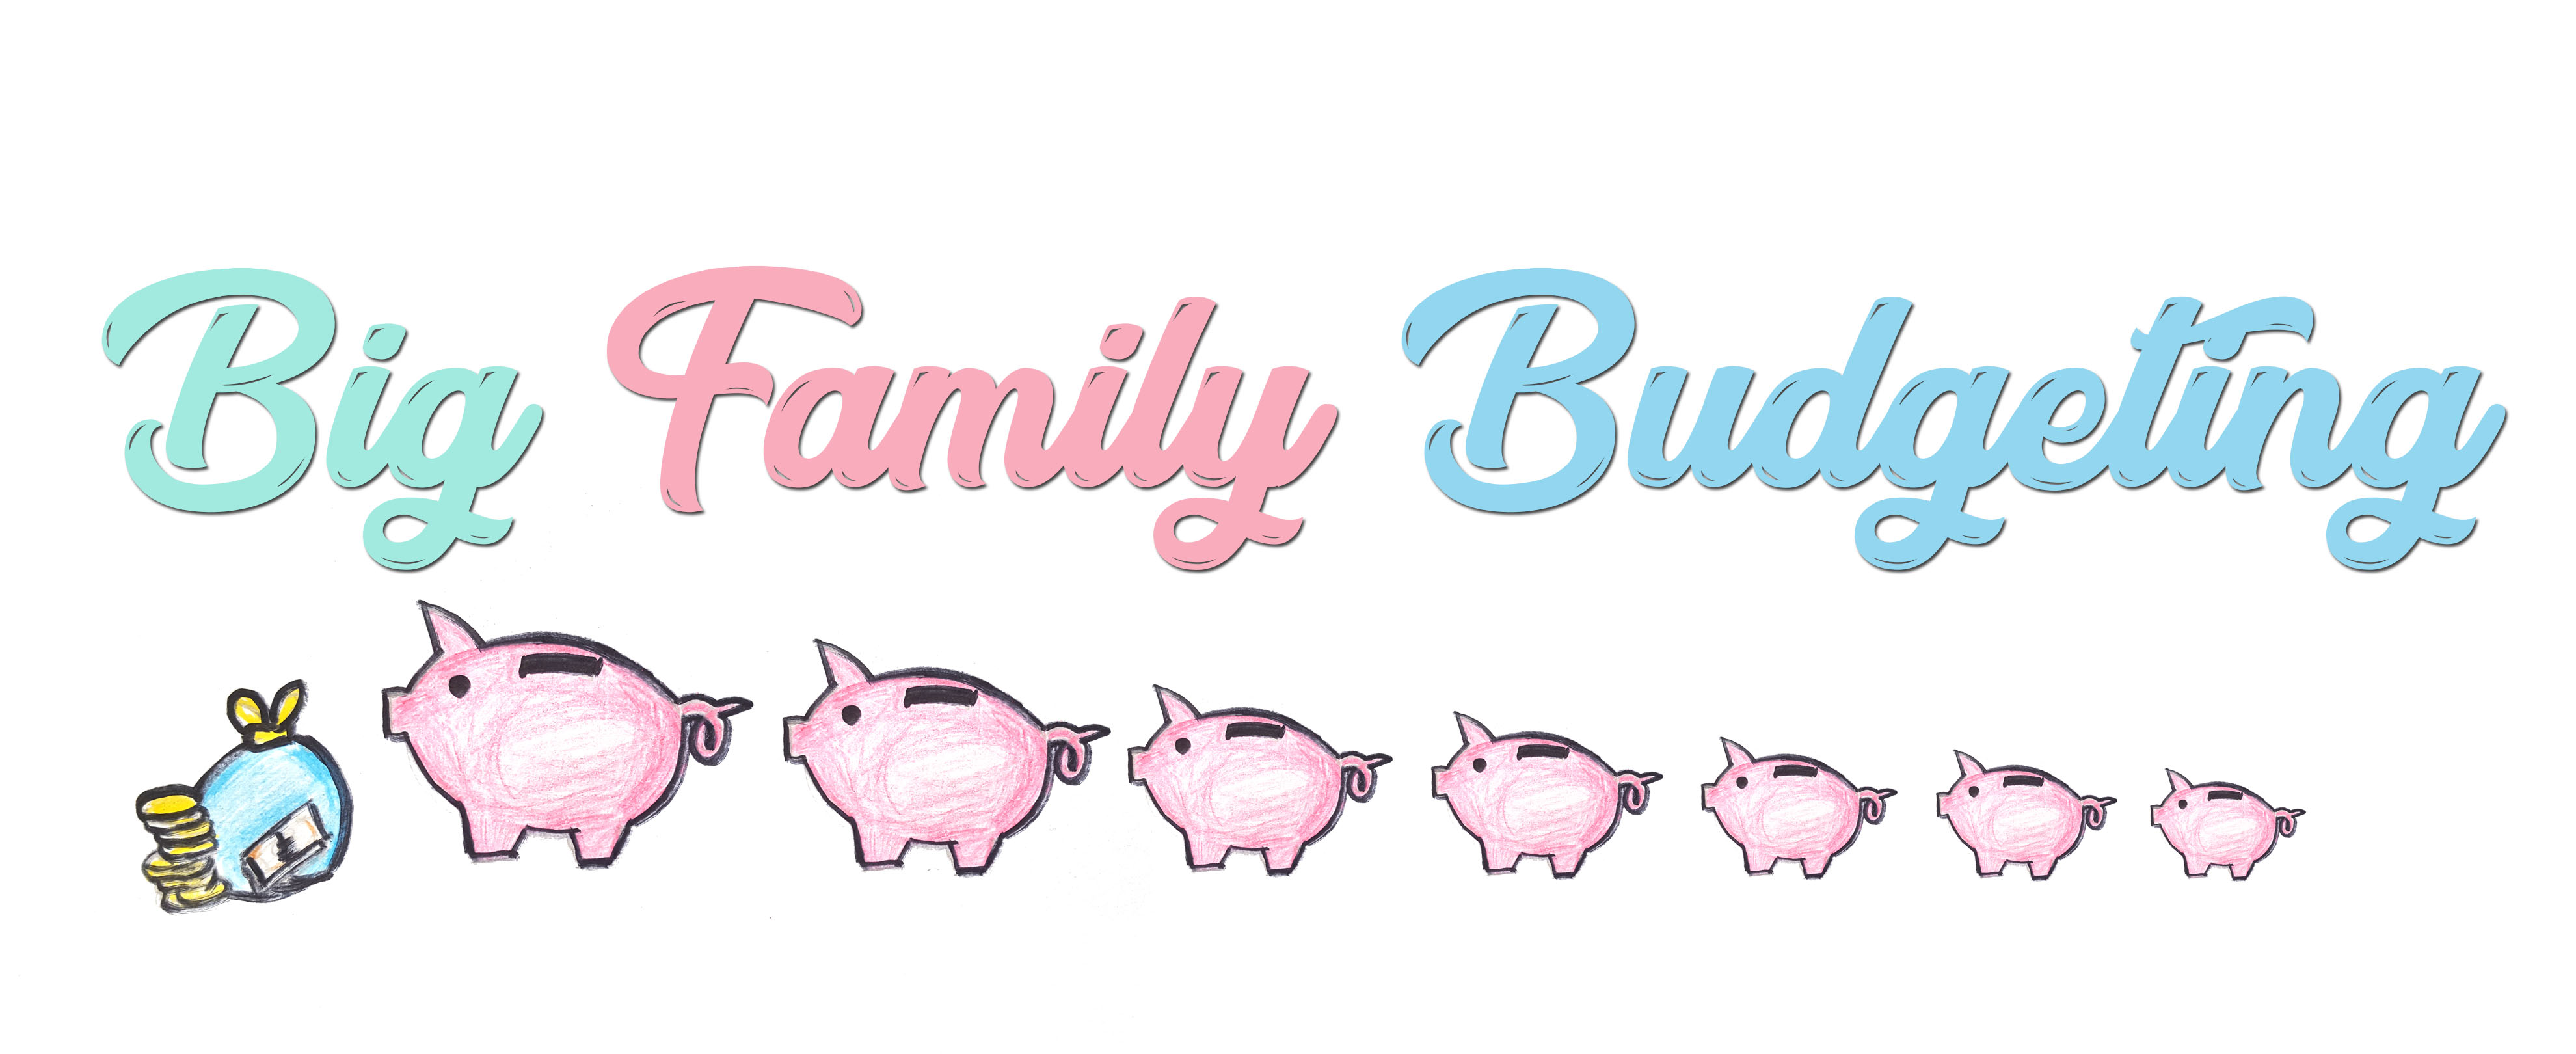 Big Family Budgeting